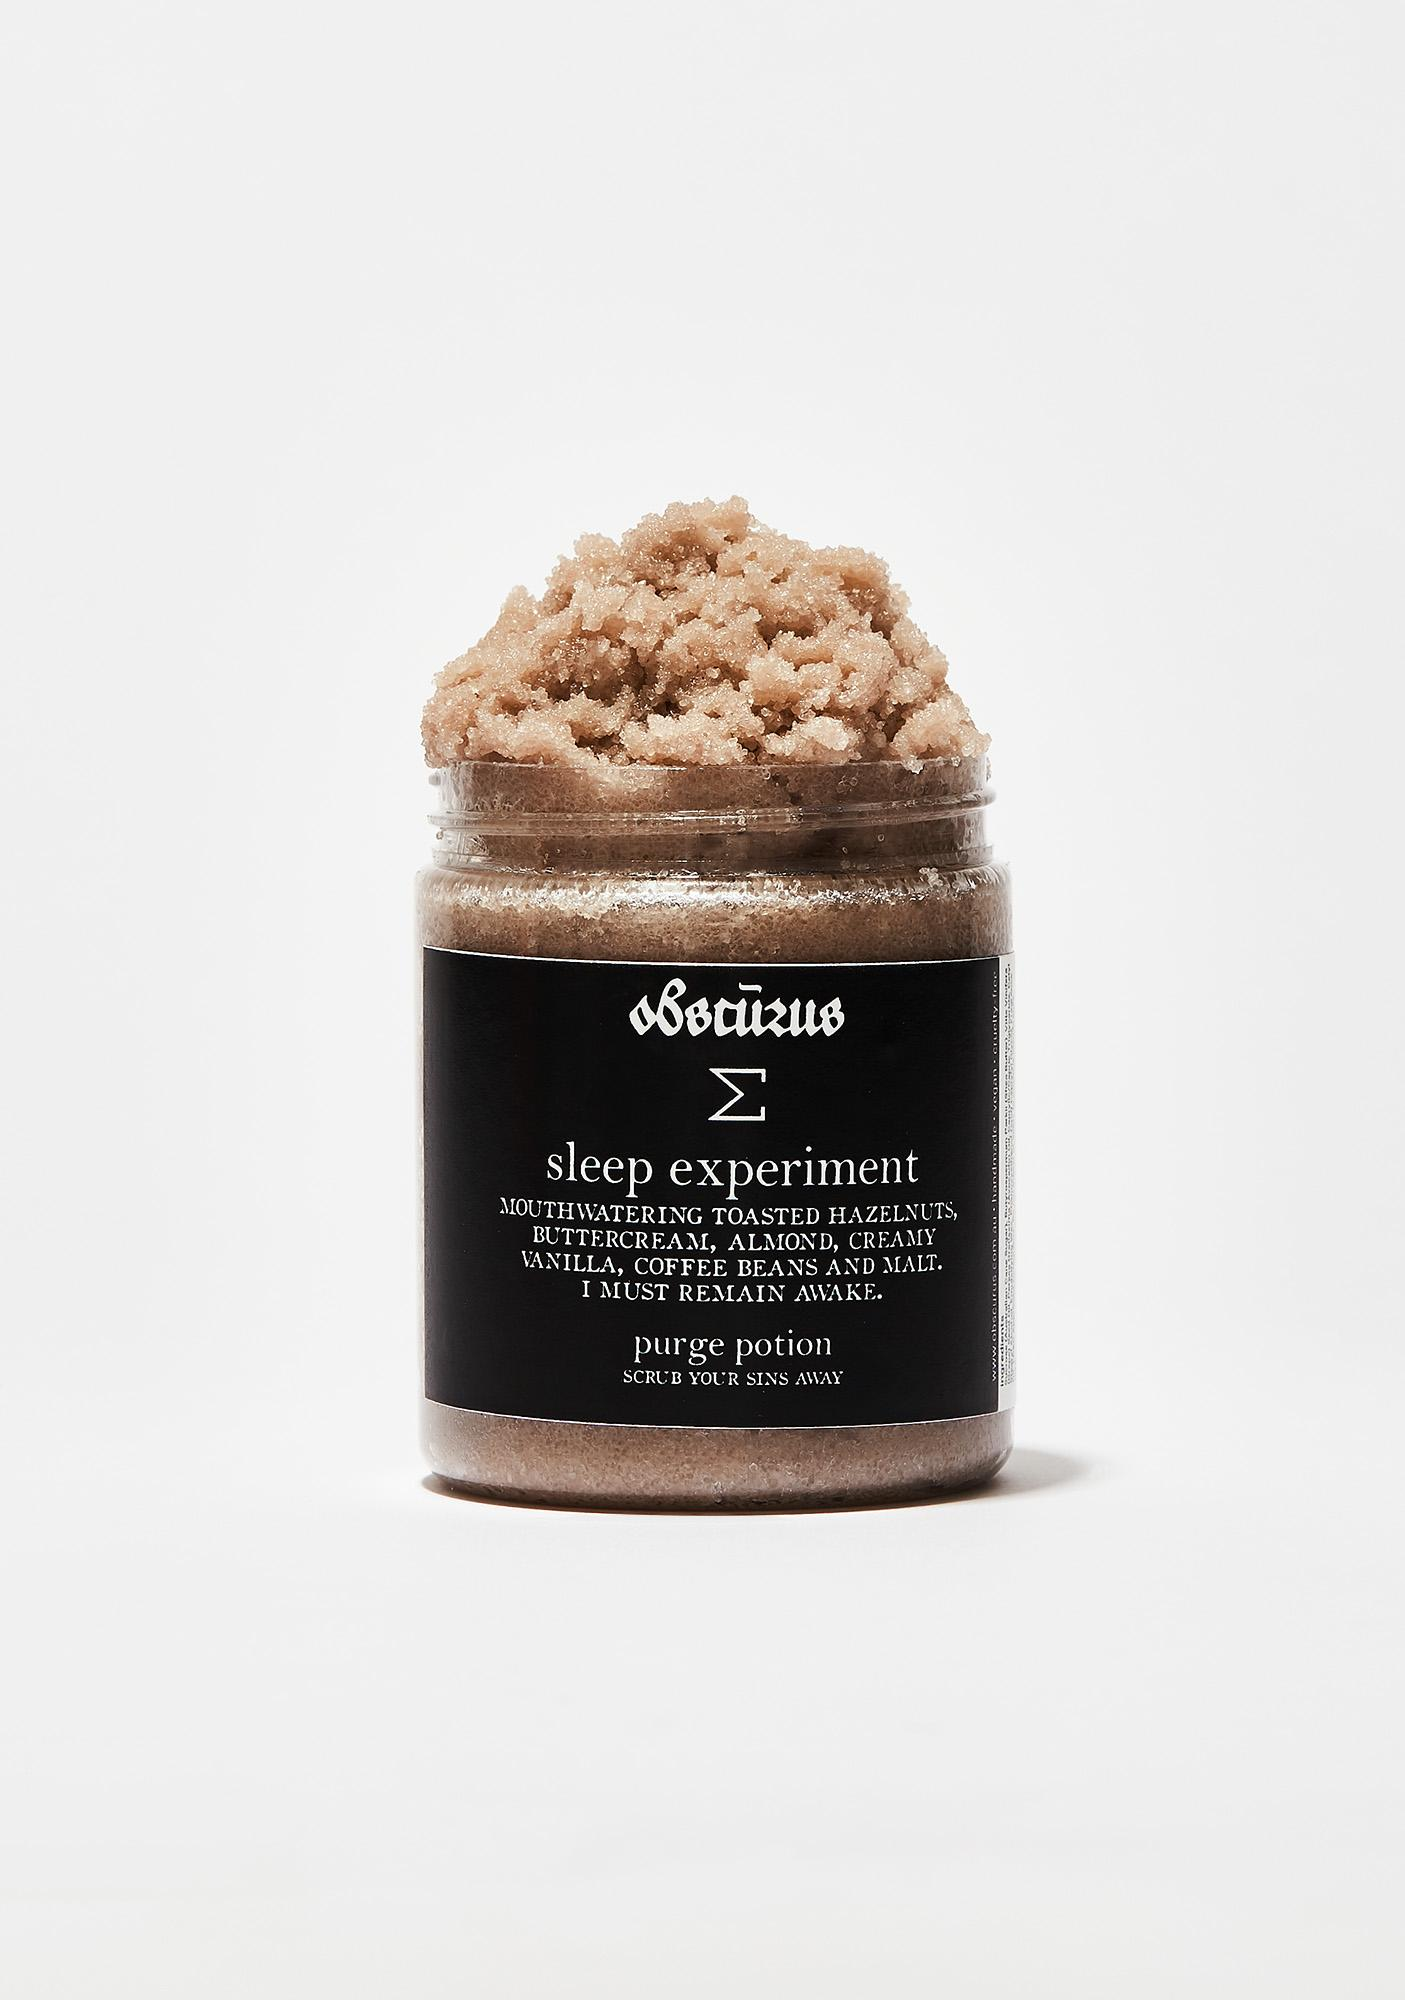 Obscurus Sleep Experiment Purge Potion